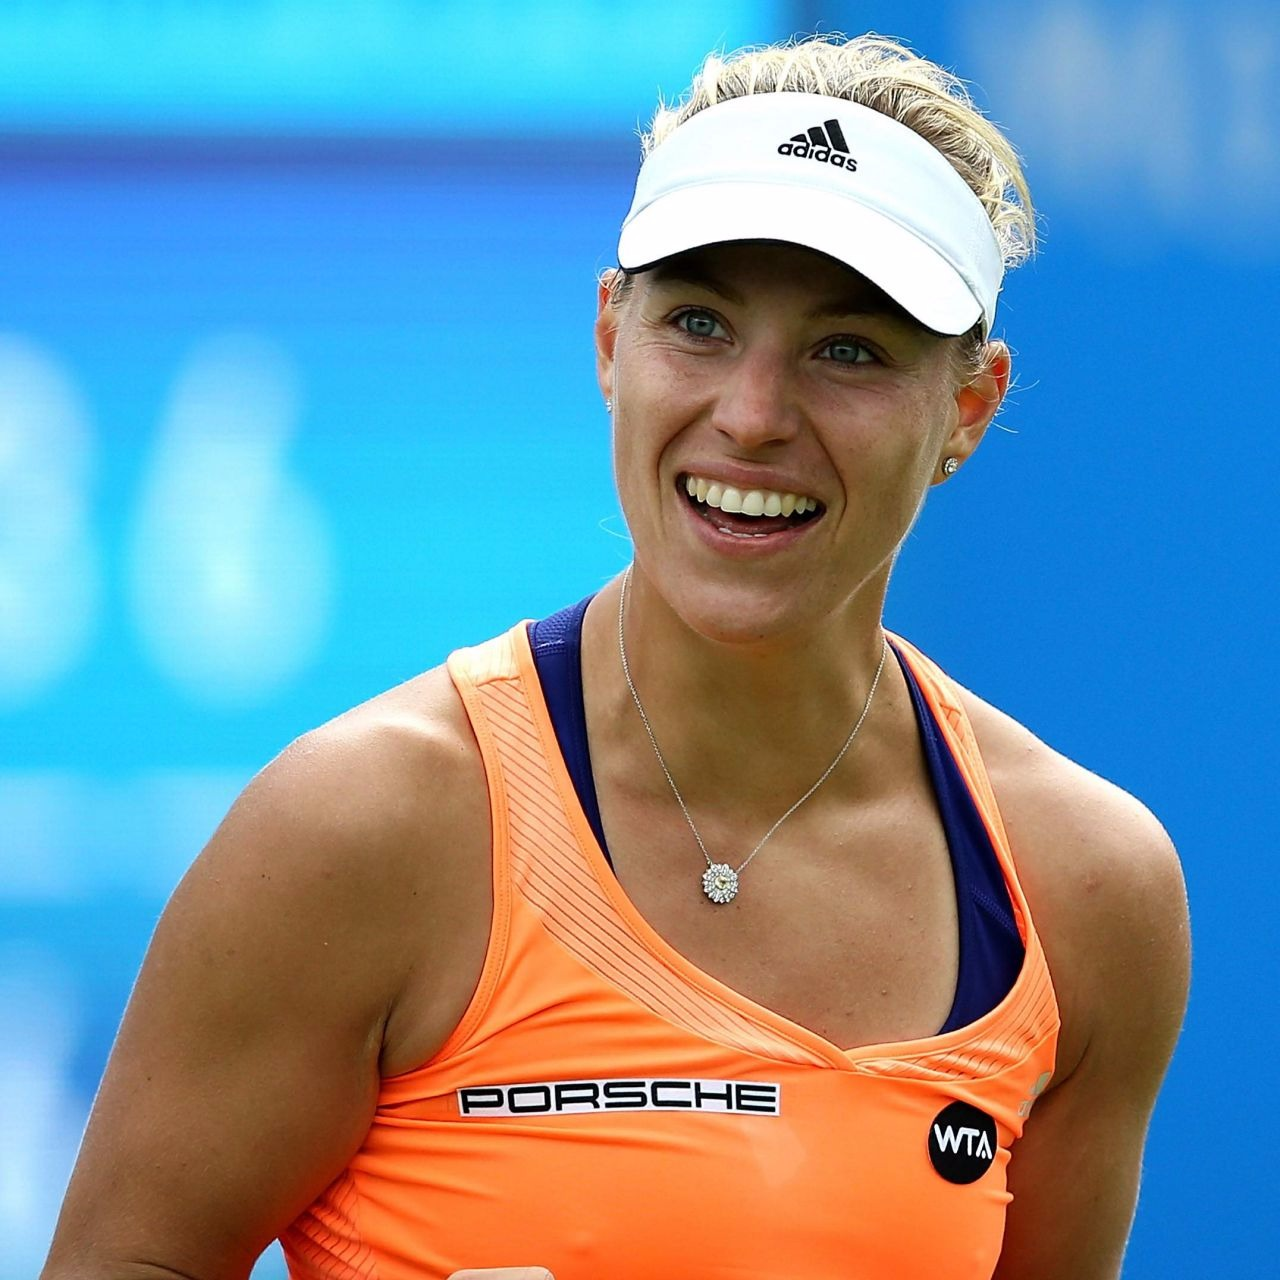 Angelique Kerber celebrating with a smile . She has closed both her hands and pulled them backwards as a gesture.